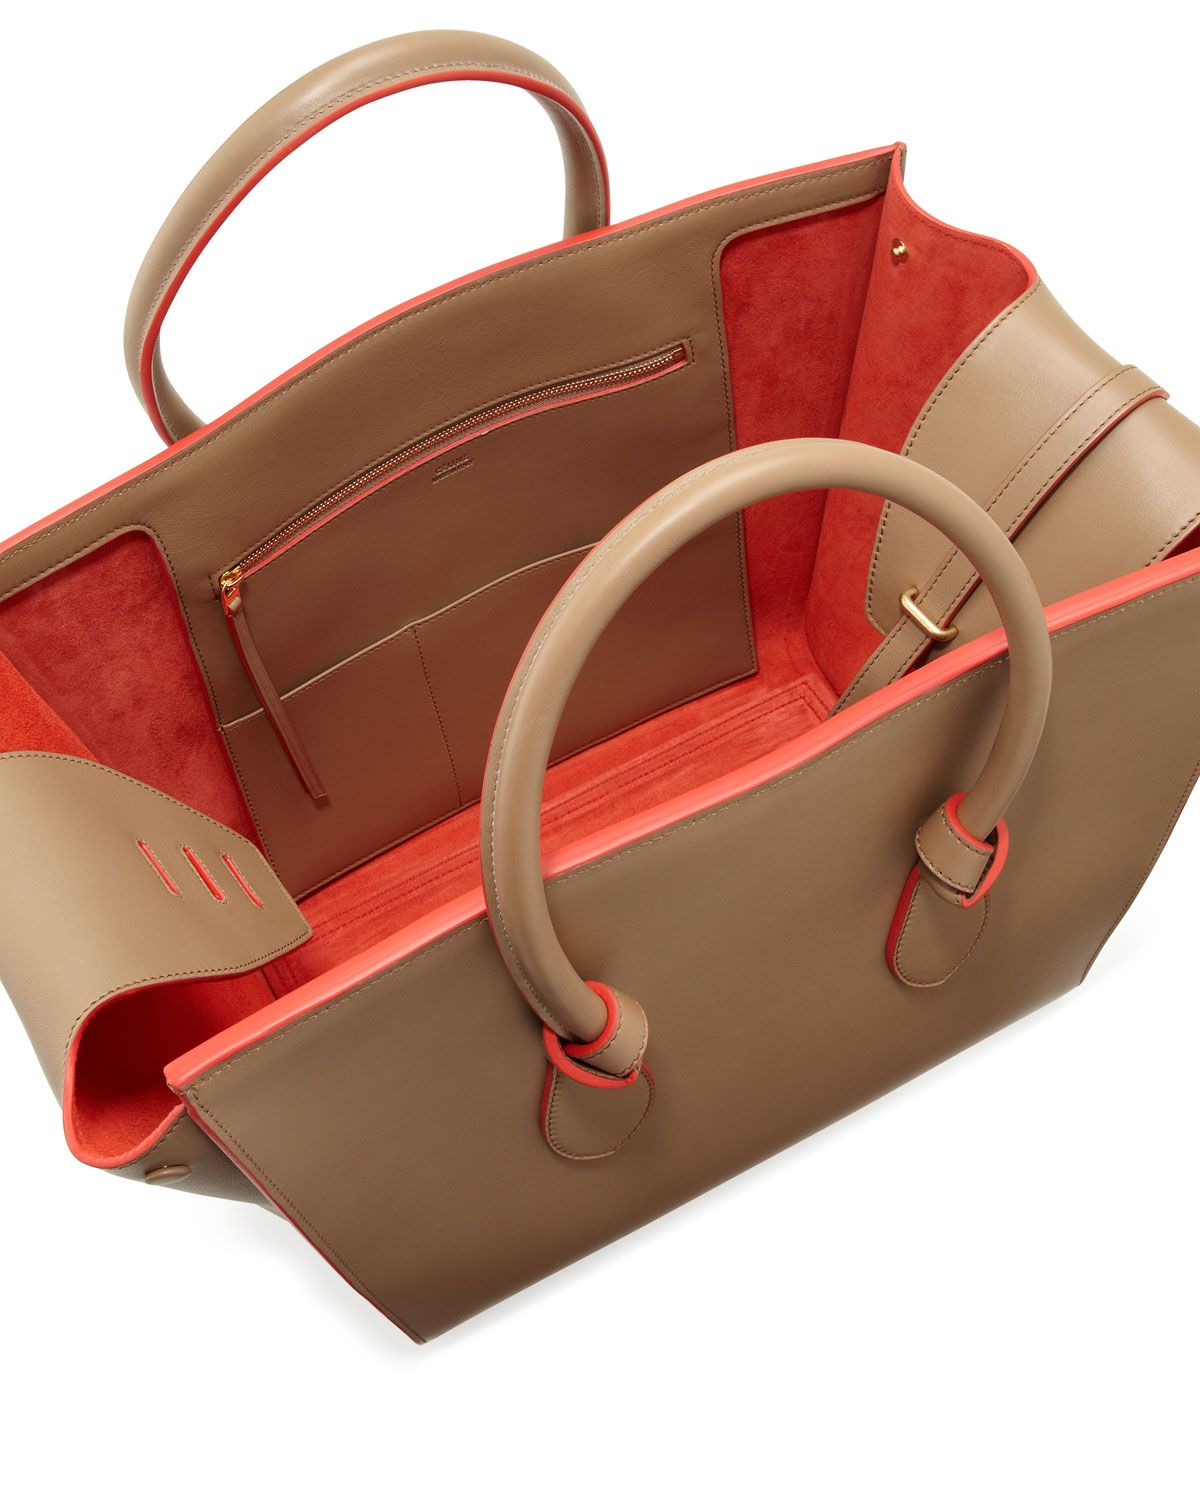 Knot Flap Tote Bag, Beige/Red